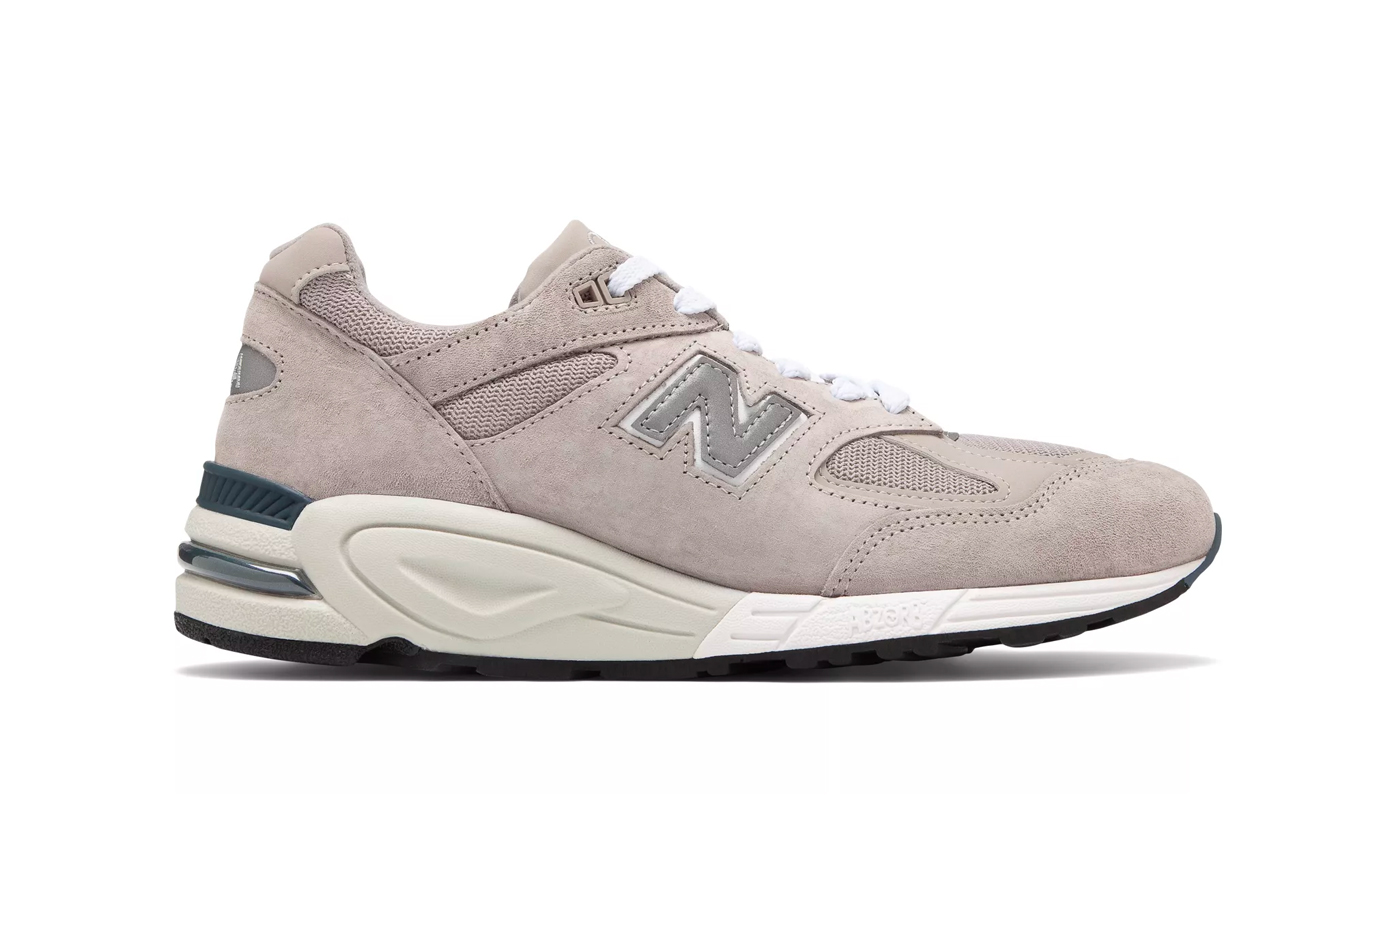 New Balance Made in USA 990v2 Grey with White Release Info 9'X Series Pack